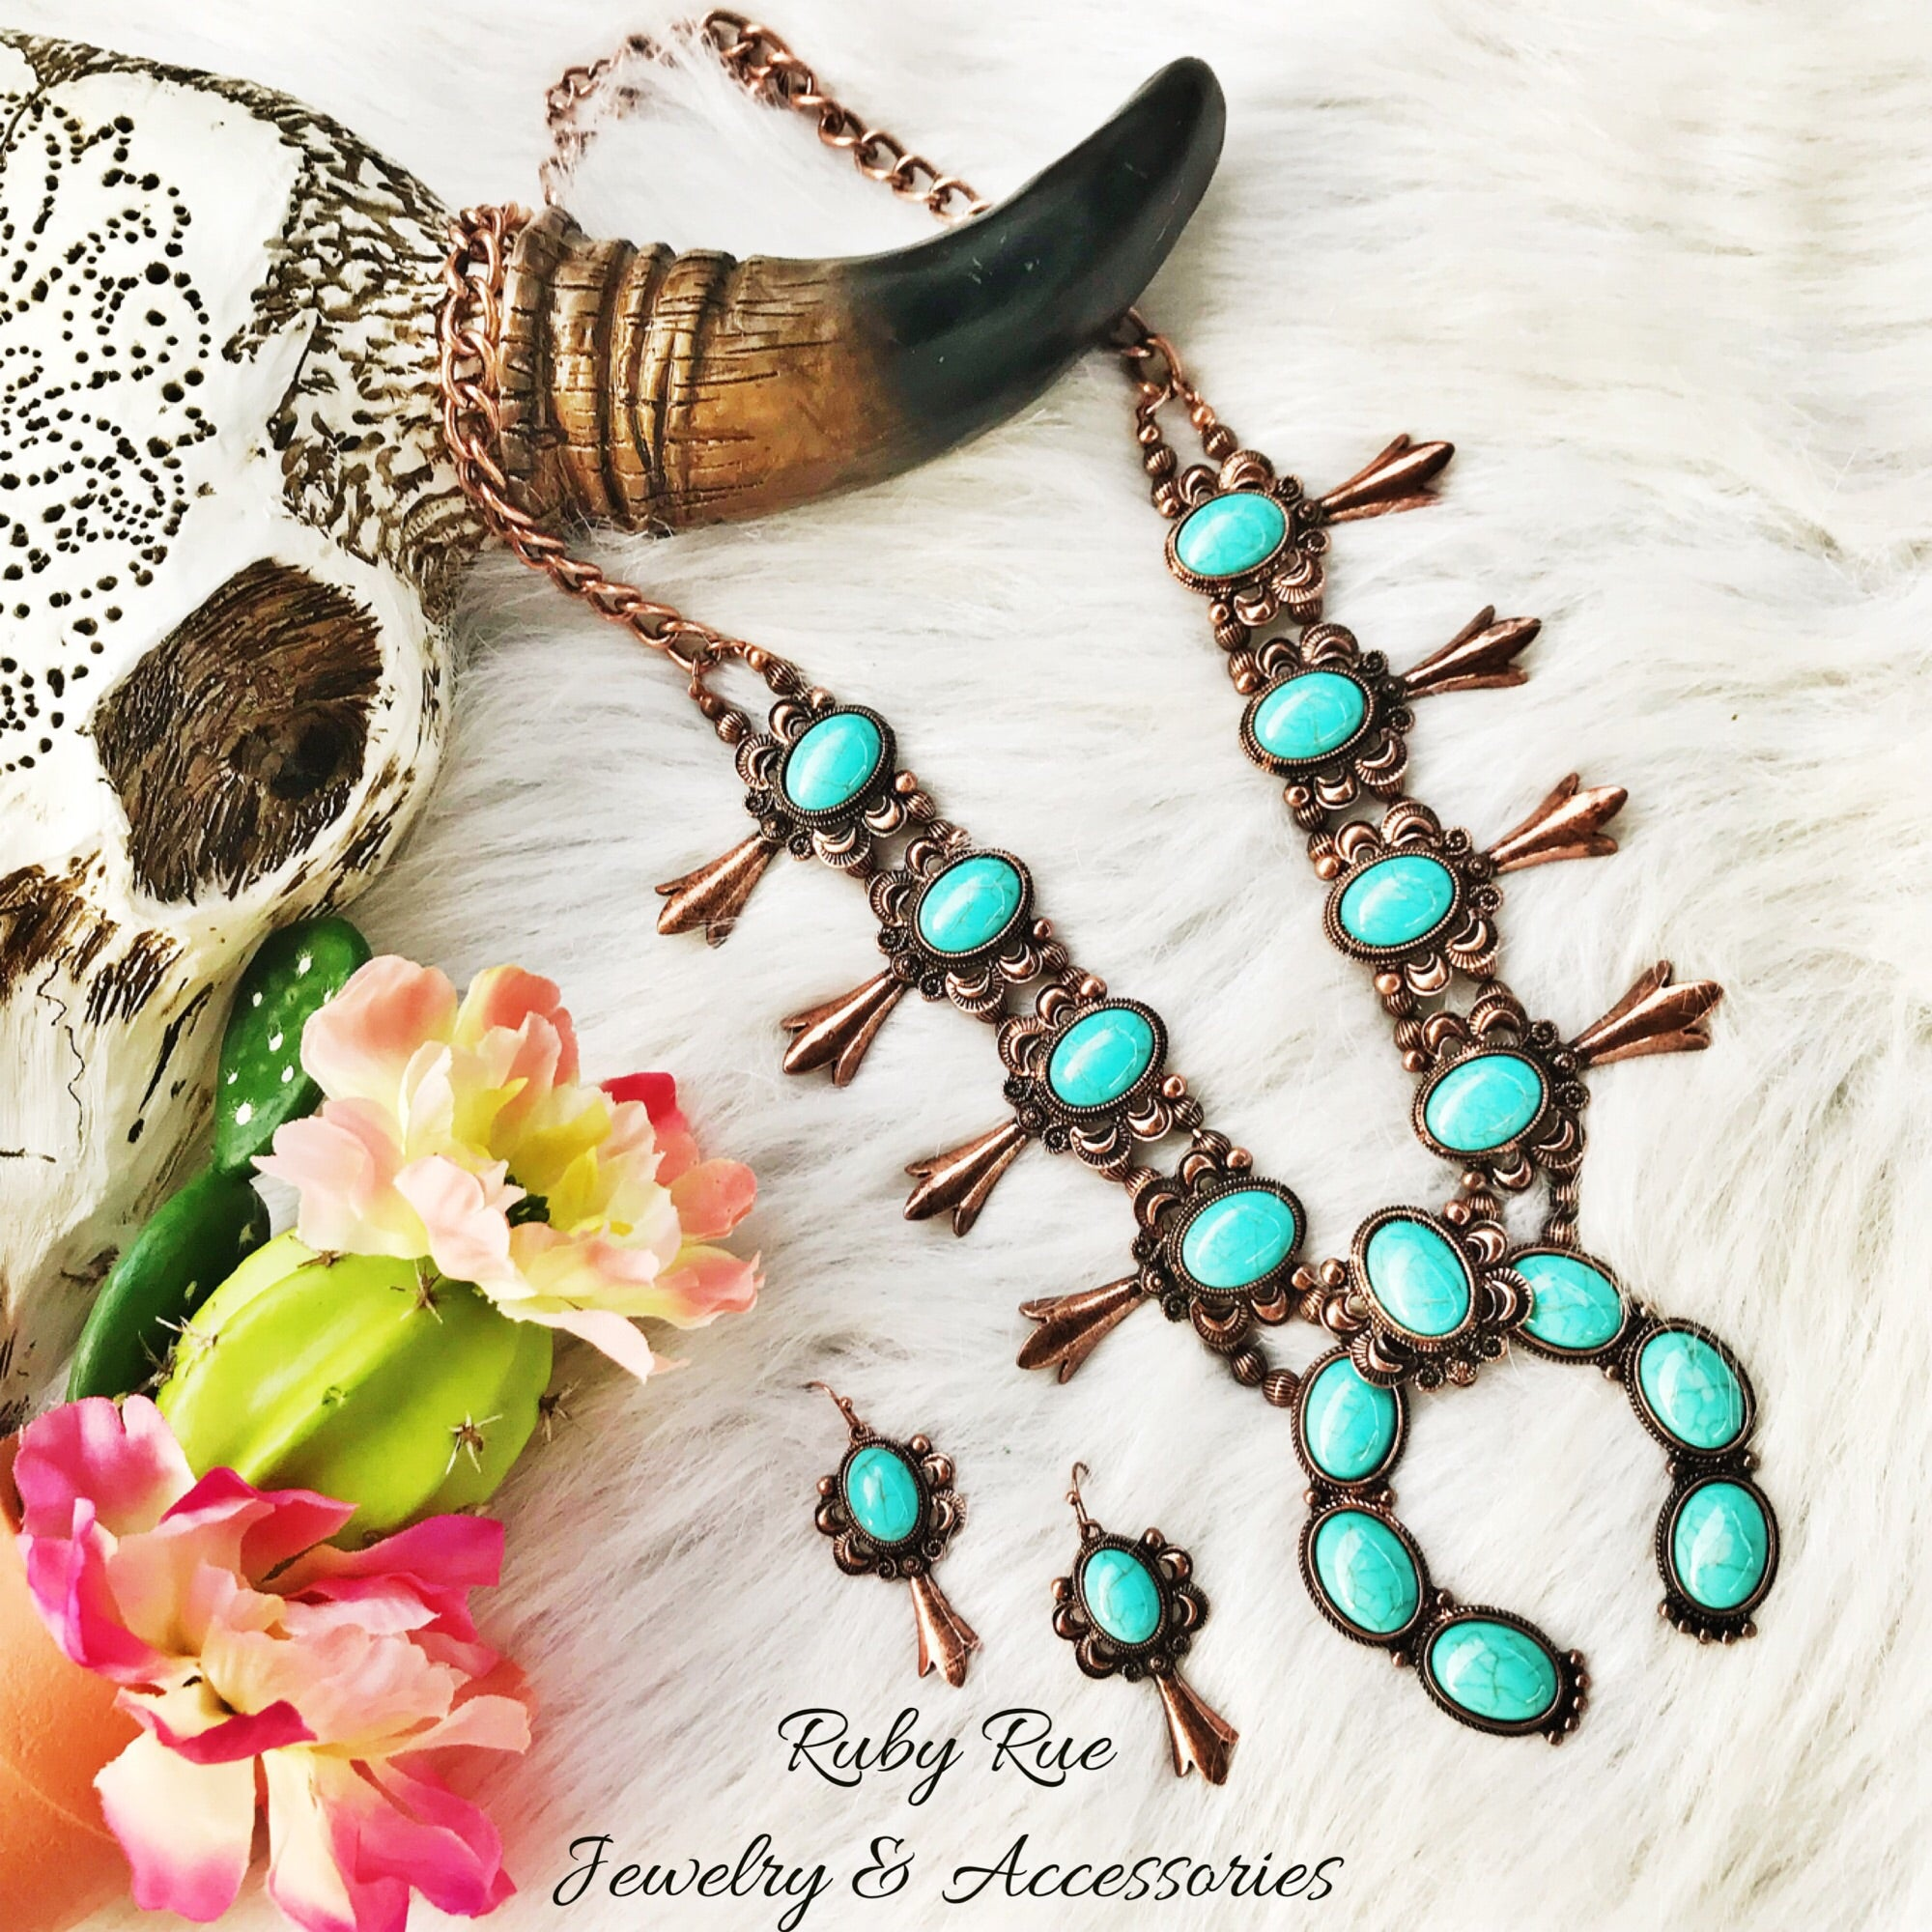 Ol' Antique Turquoise Squash Set - Ruby Rue Jewelry & Accessories